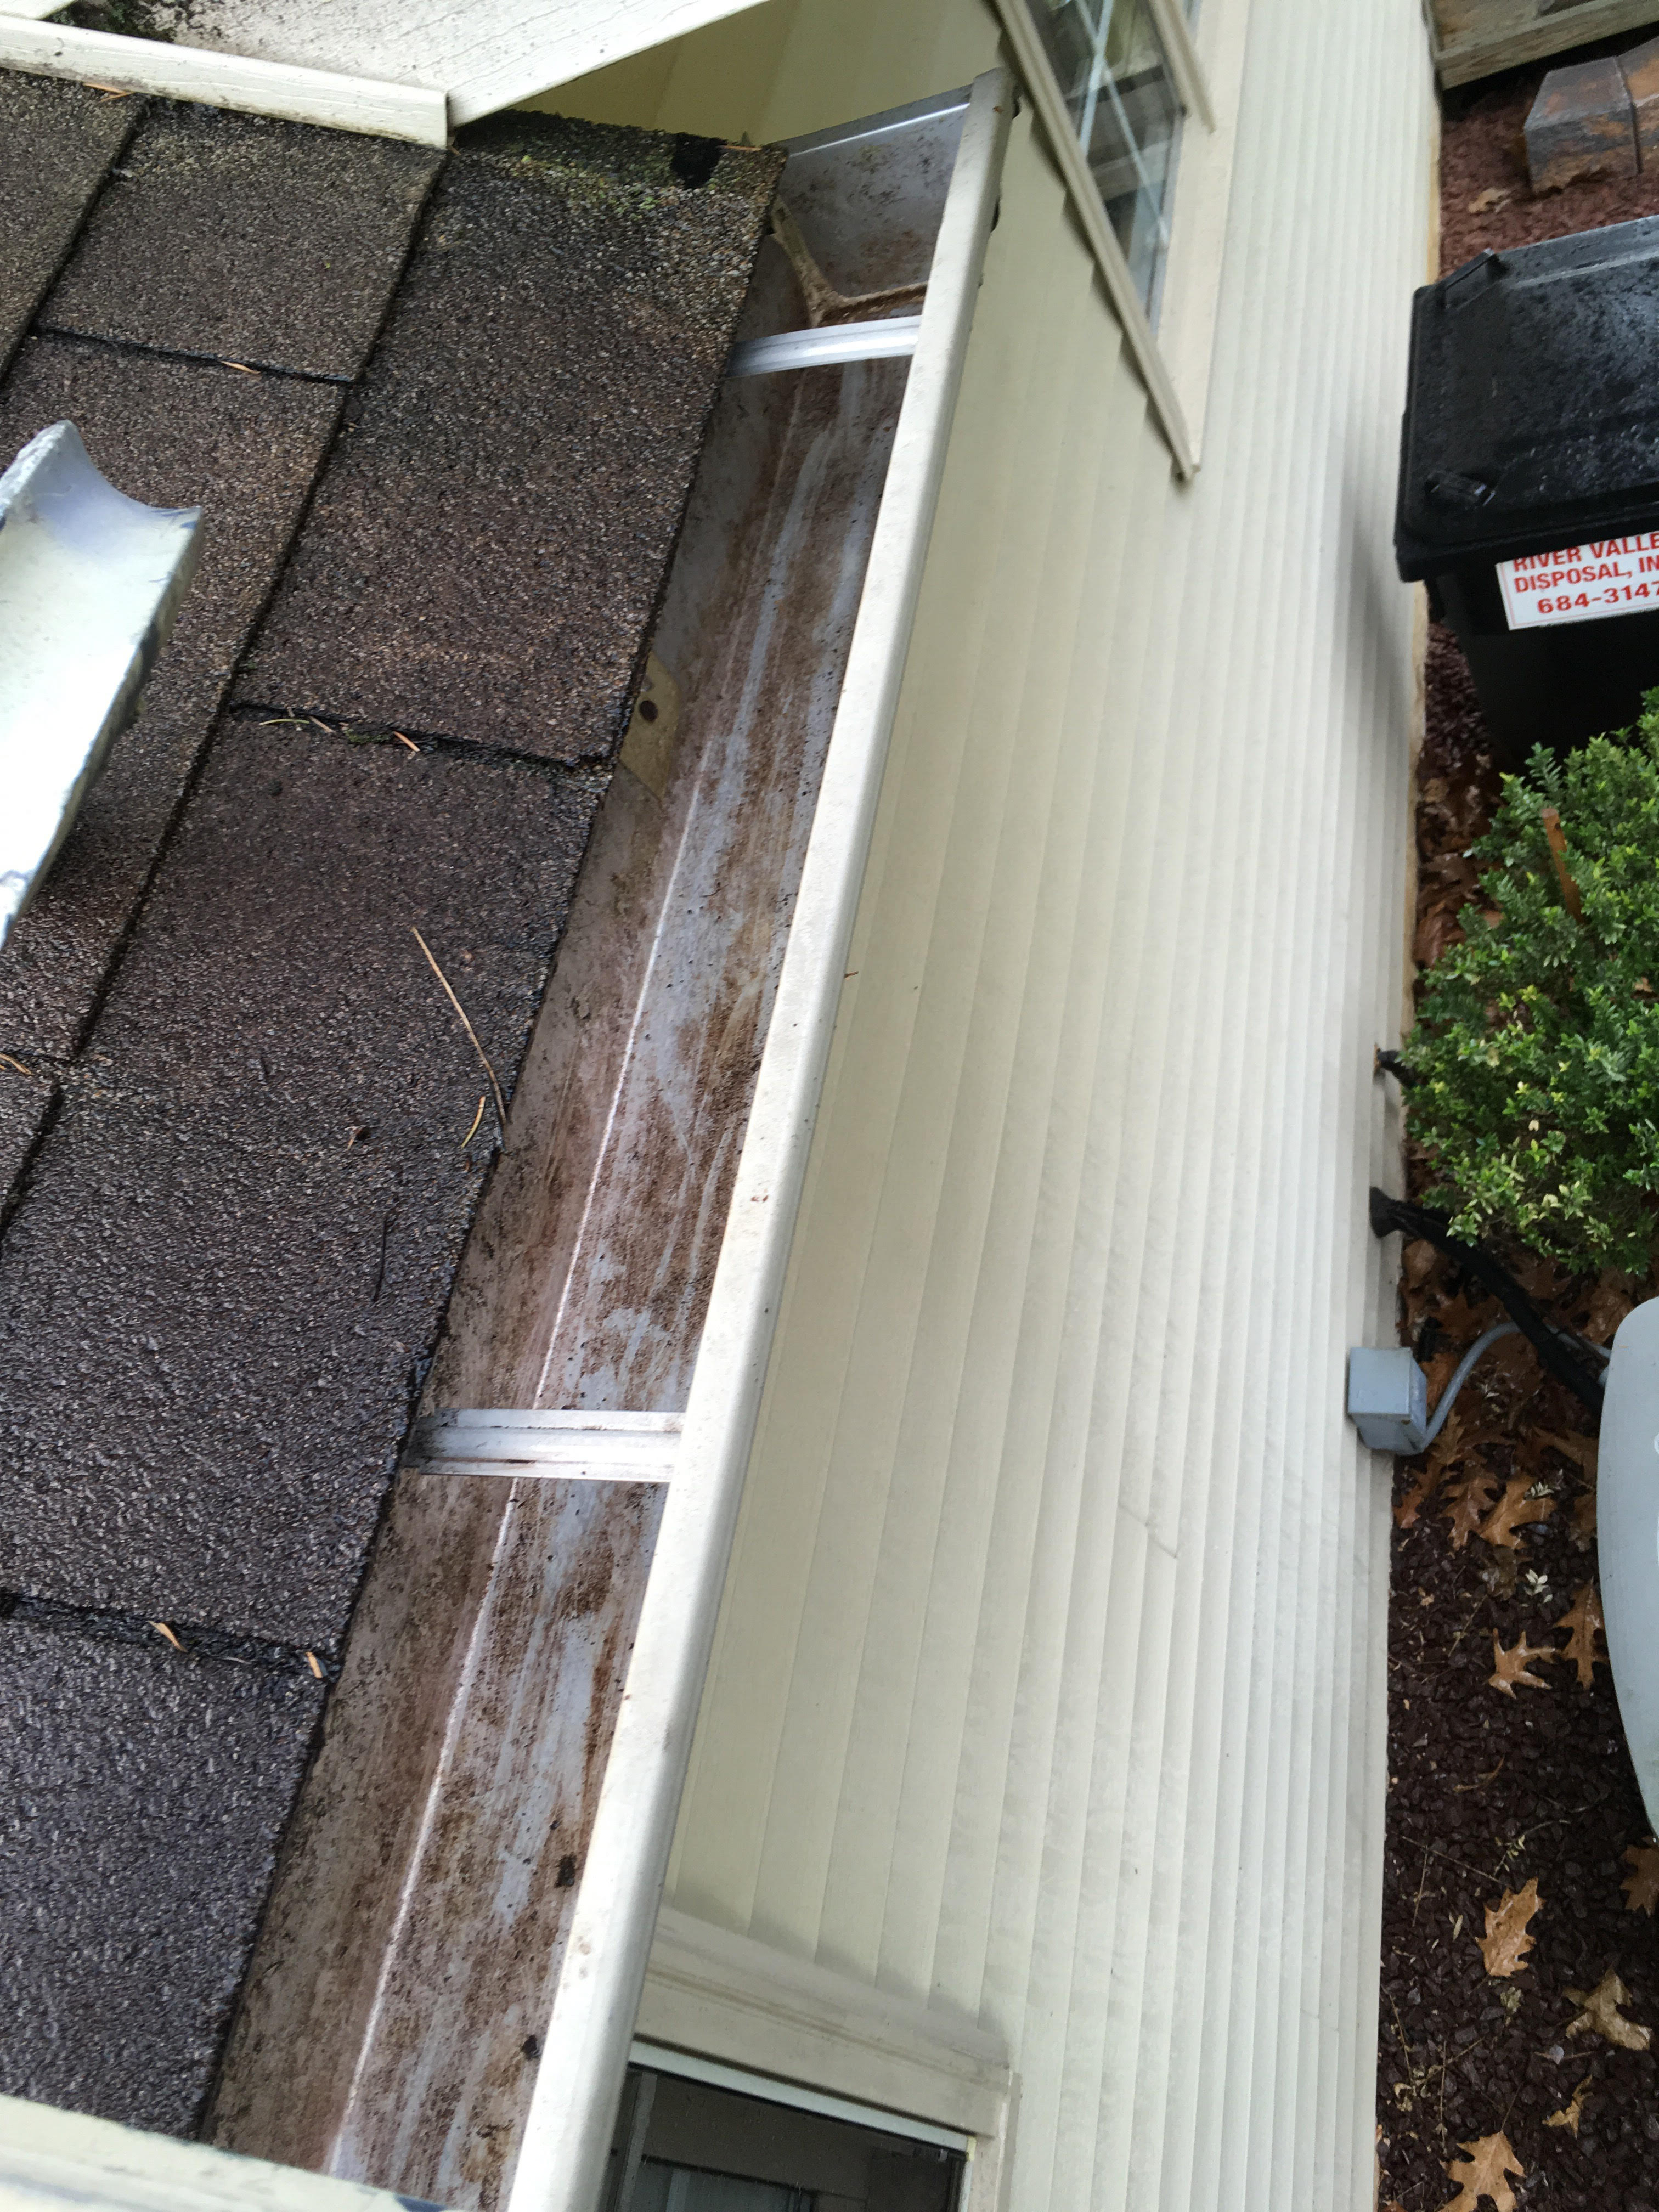 Recent Gutter Cleaning Millersville Pa February 22